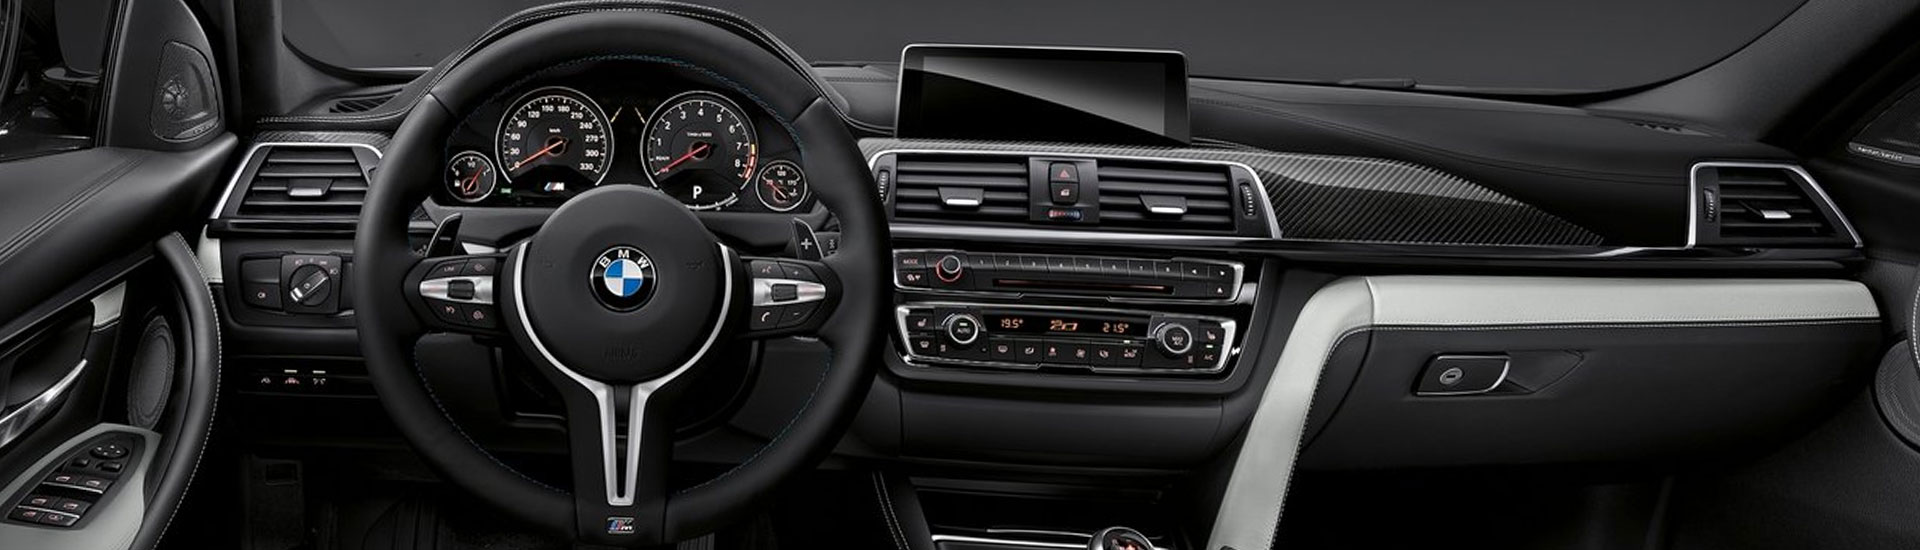 2017 Bmw 328i Interior Trim Kit